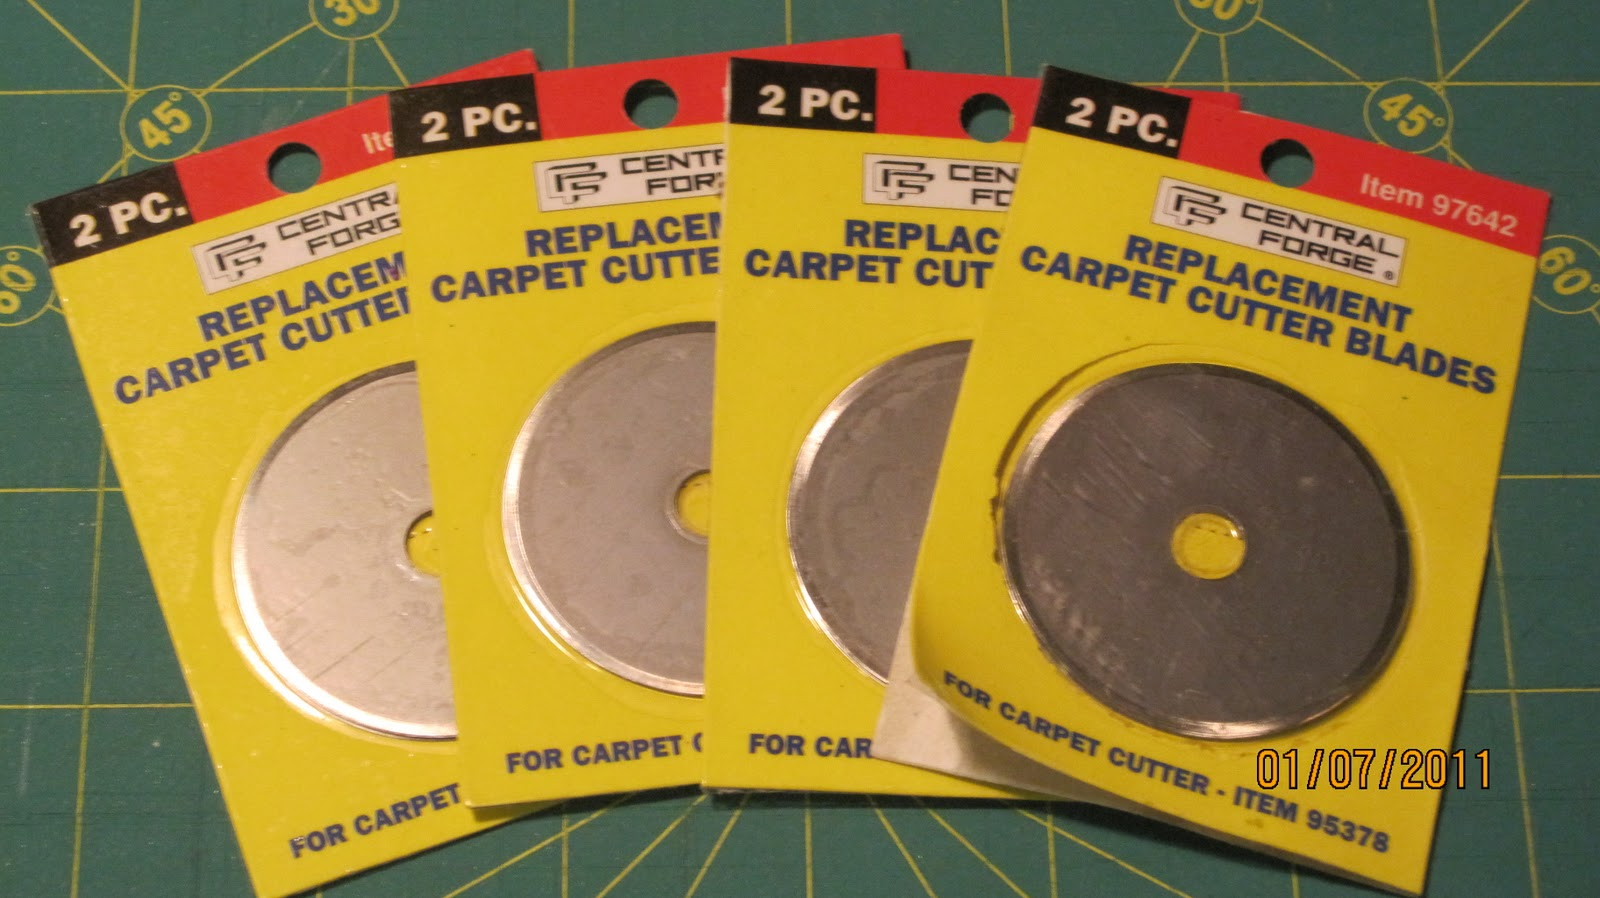 All About Me N Crafts Central Forge Carpet Cutter